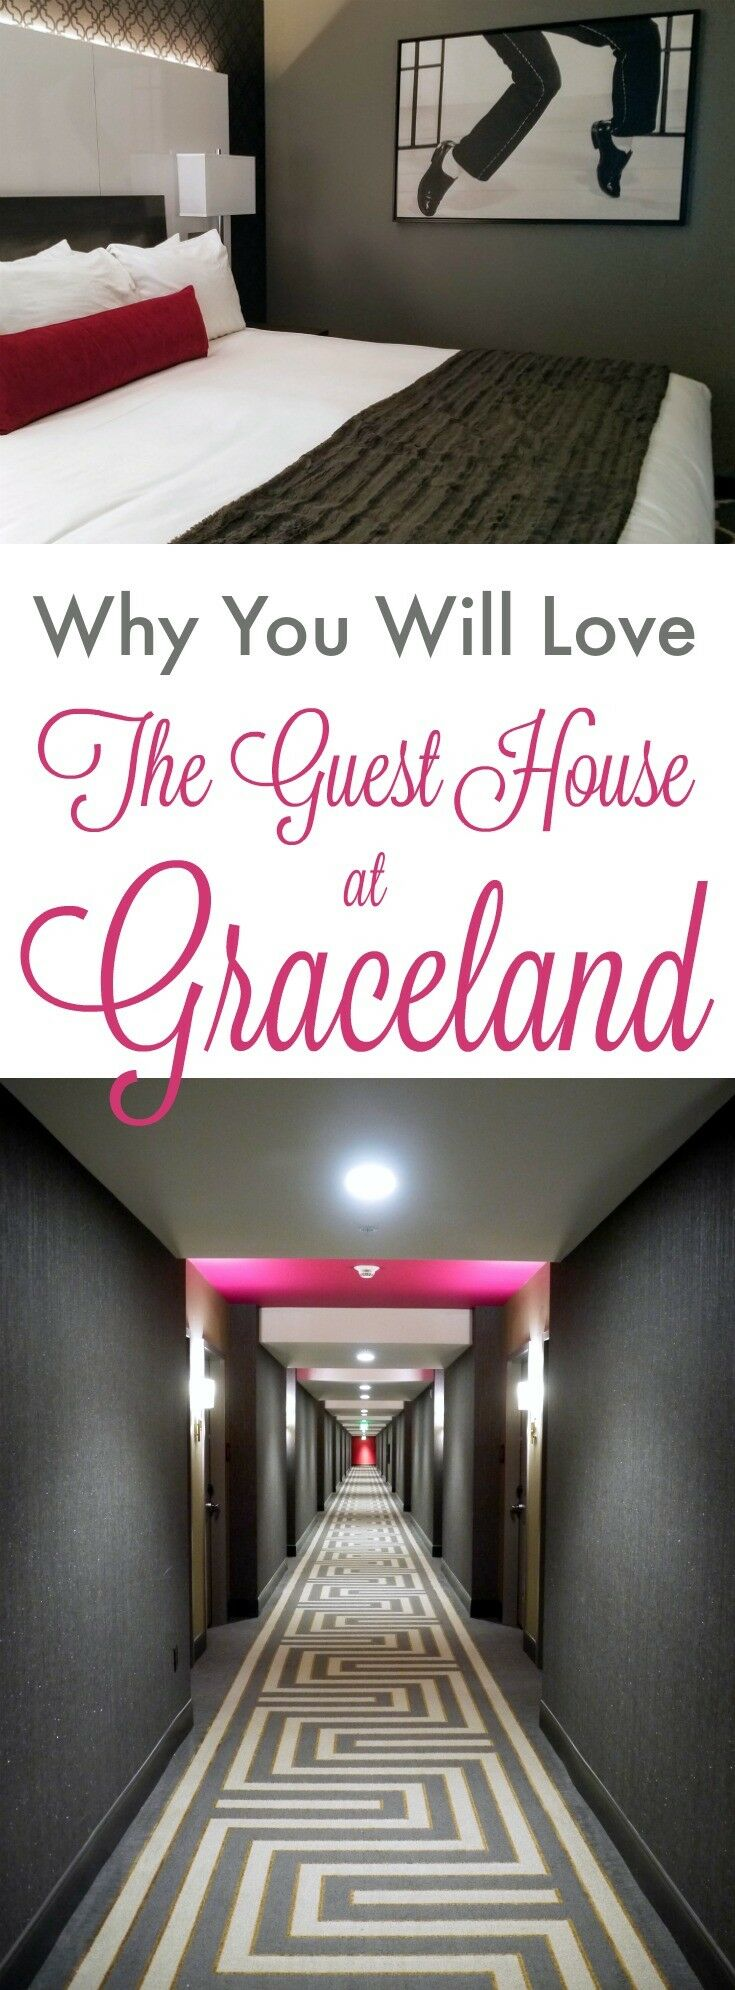 Why You Will LOVE The Guest House at Graceland - From first impression to last, the vibe at The Guest House at Graceland is a fusion of classic elegance and modern luxury - welcoming, refined, and unique as Elvis himself.